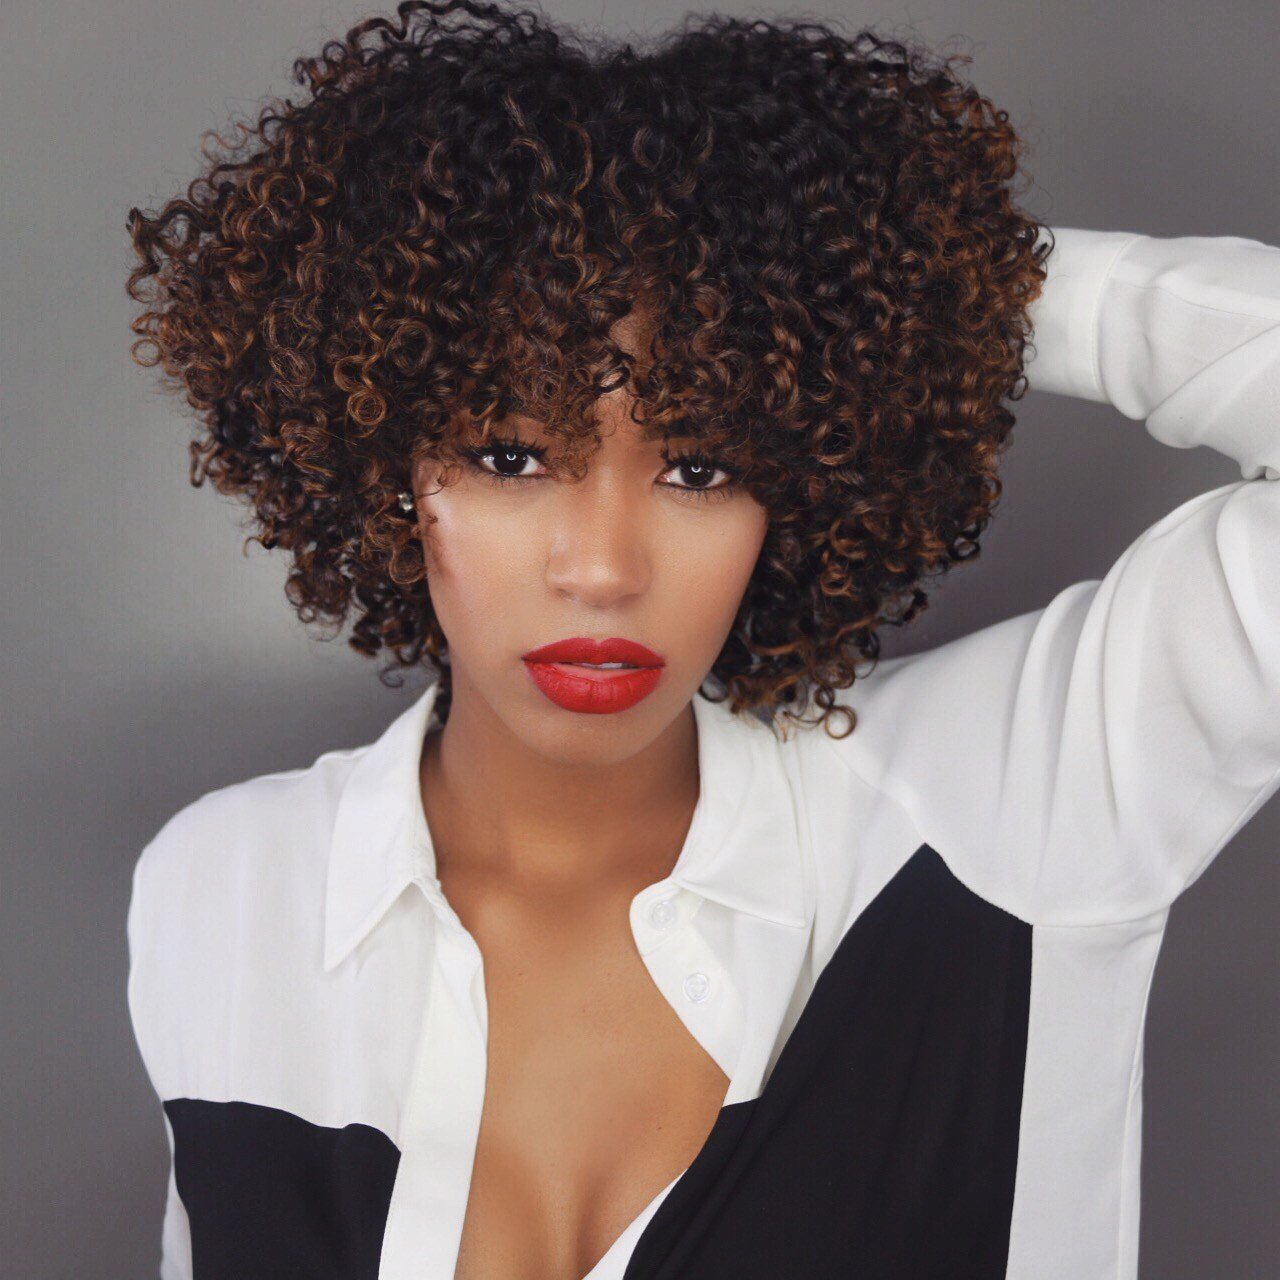 The Best 5 Medium Length Afros You'll Love Black Girl With Long Hair Pictures